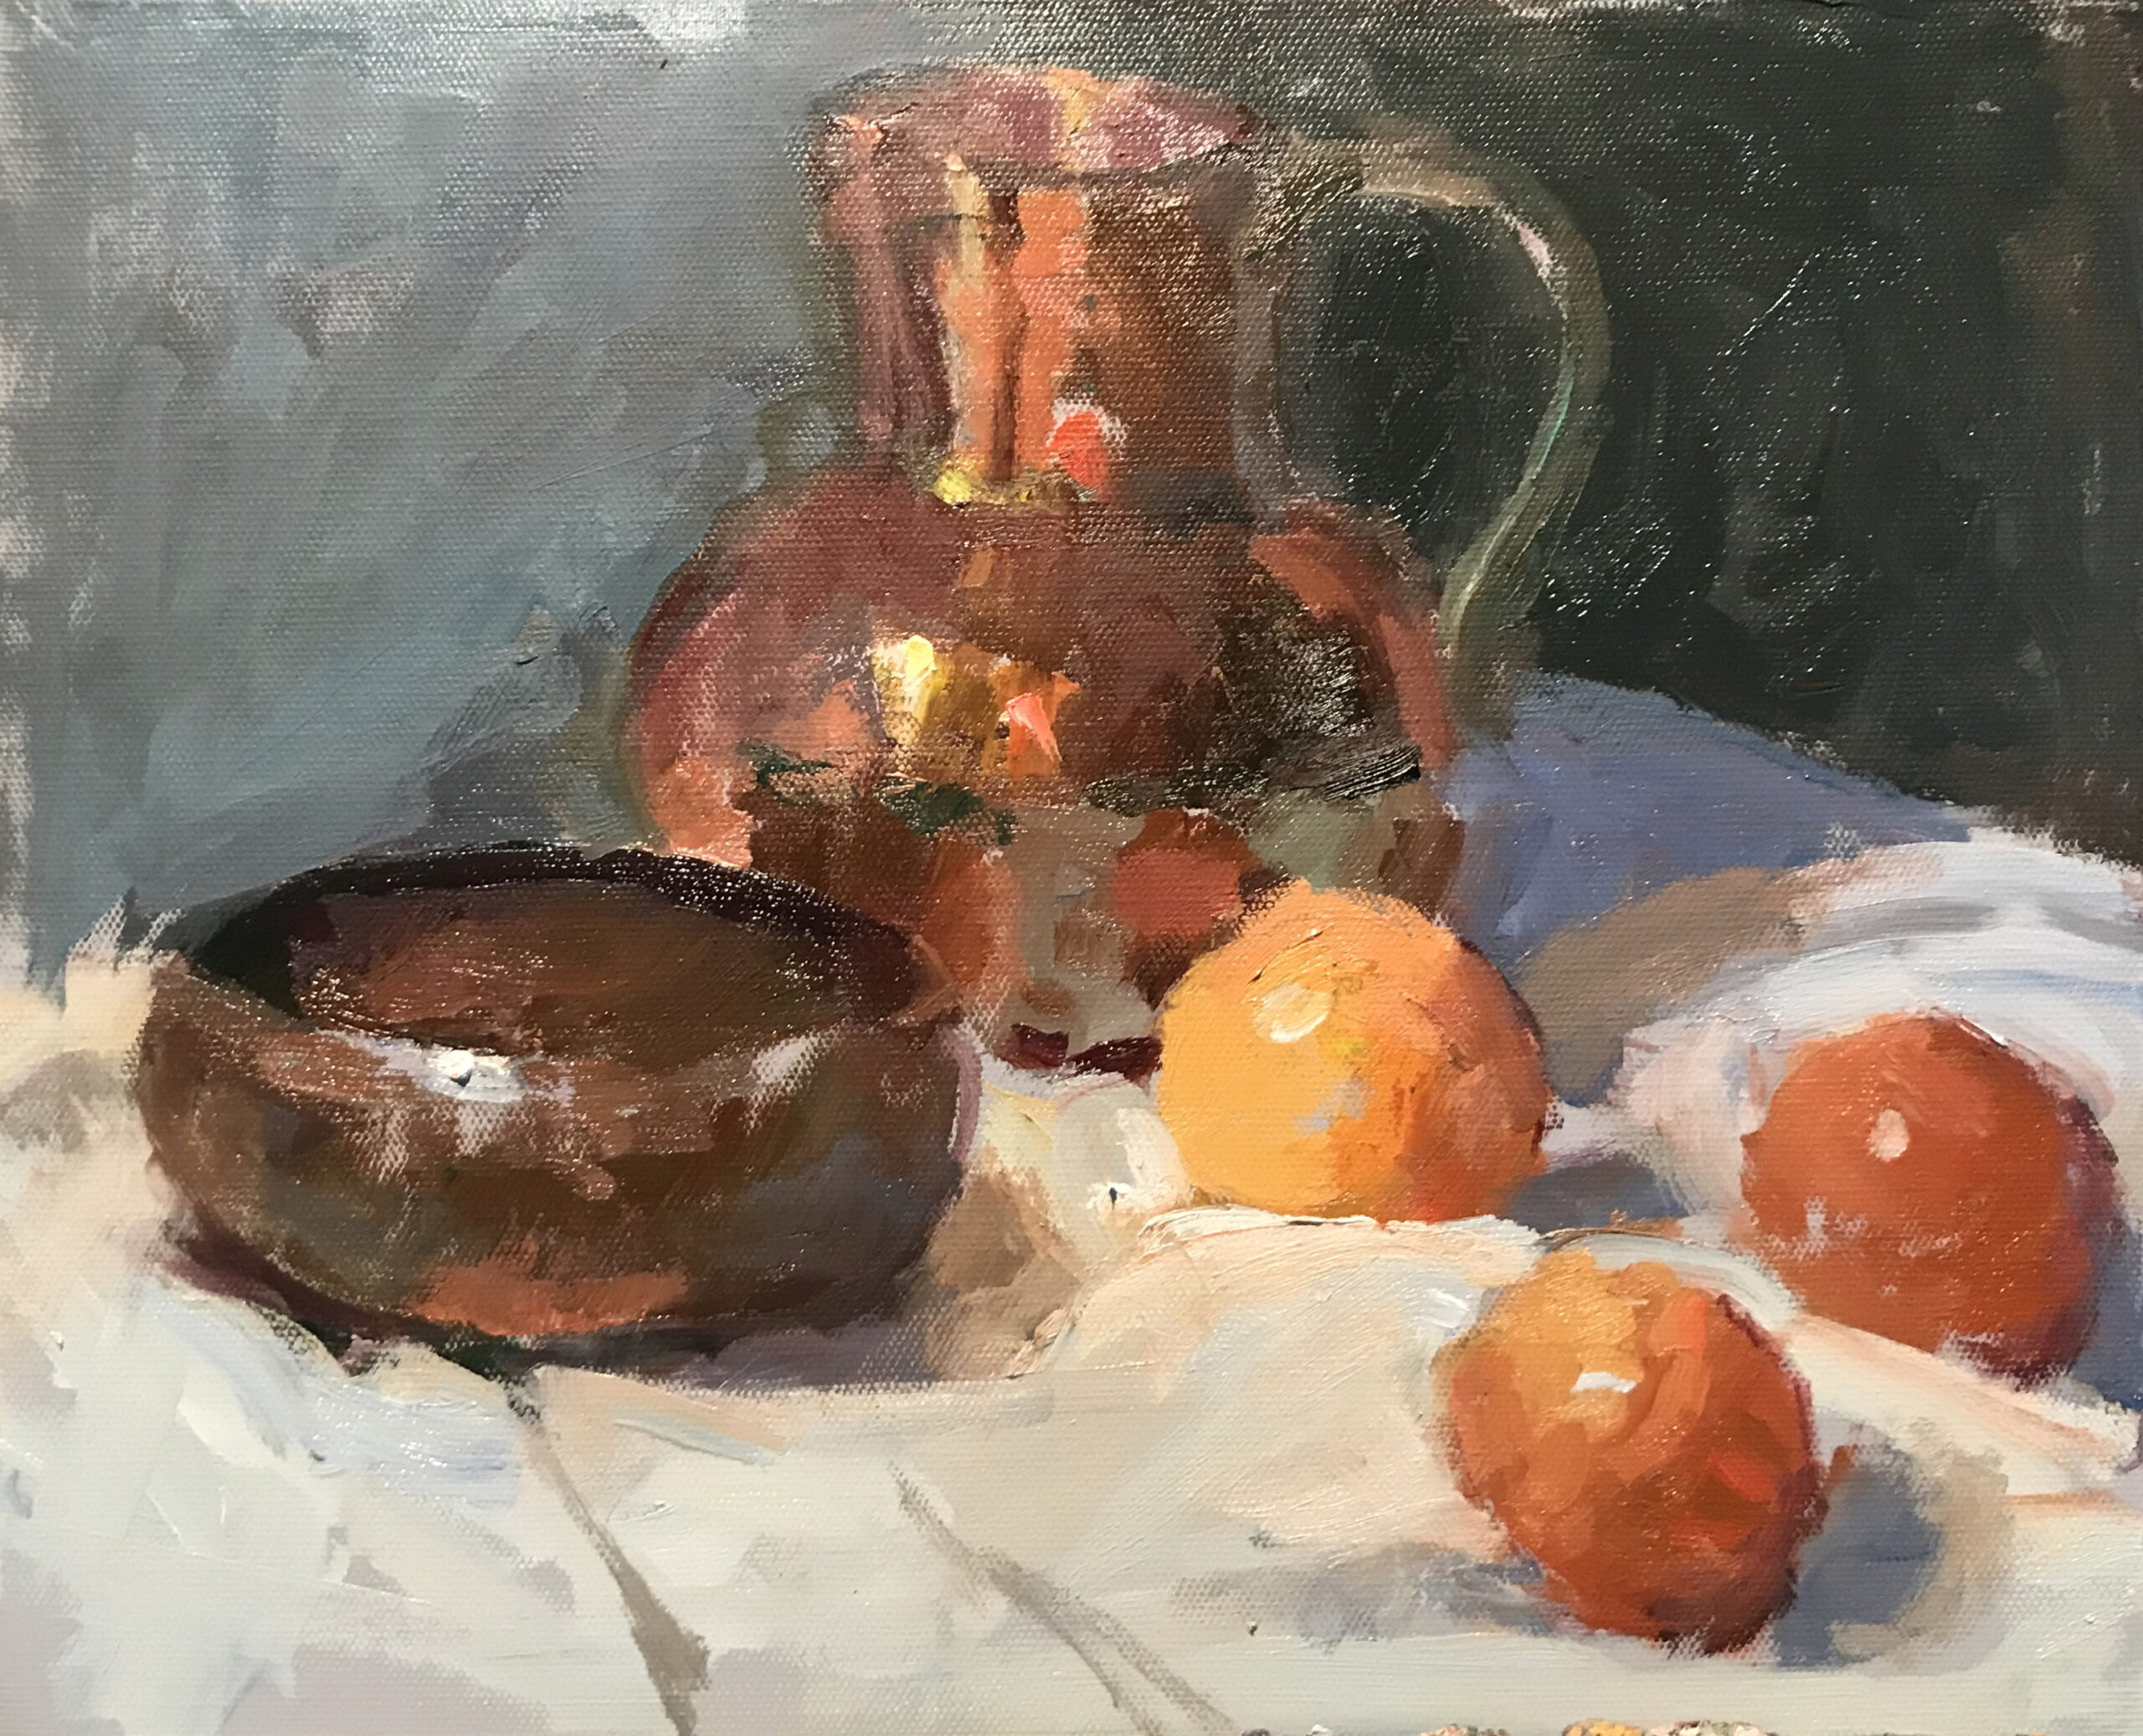 Copper and Clementines, Oil on Canvas on Panel, 11 x 14 Inches, by Susan Grisell, $300